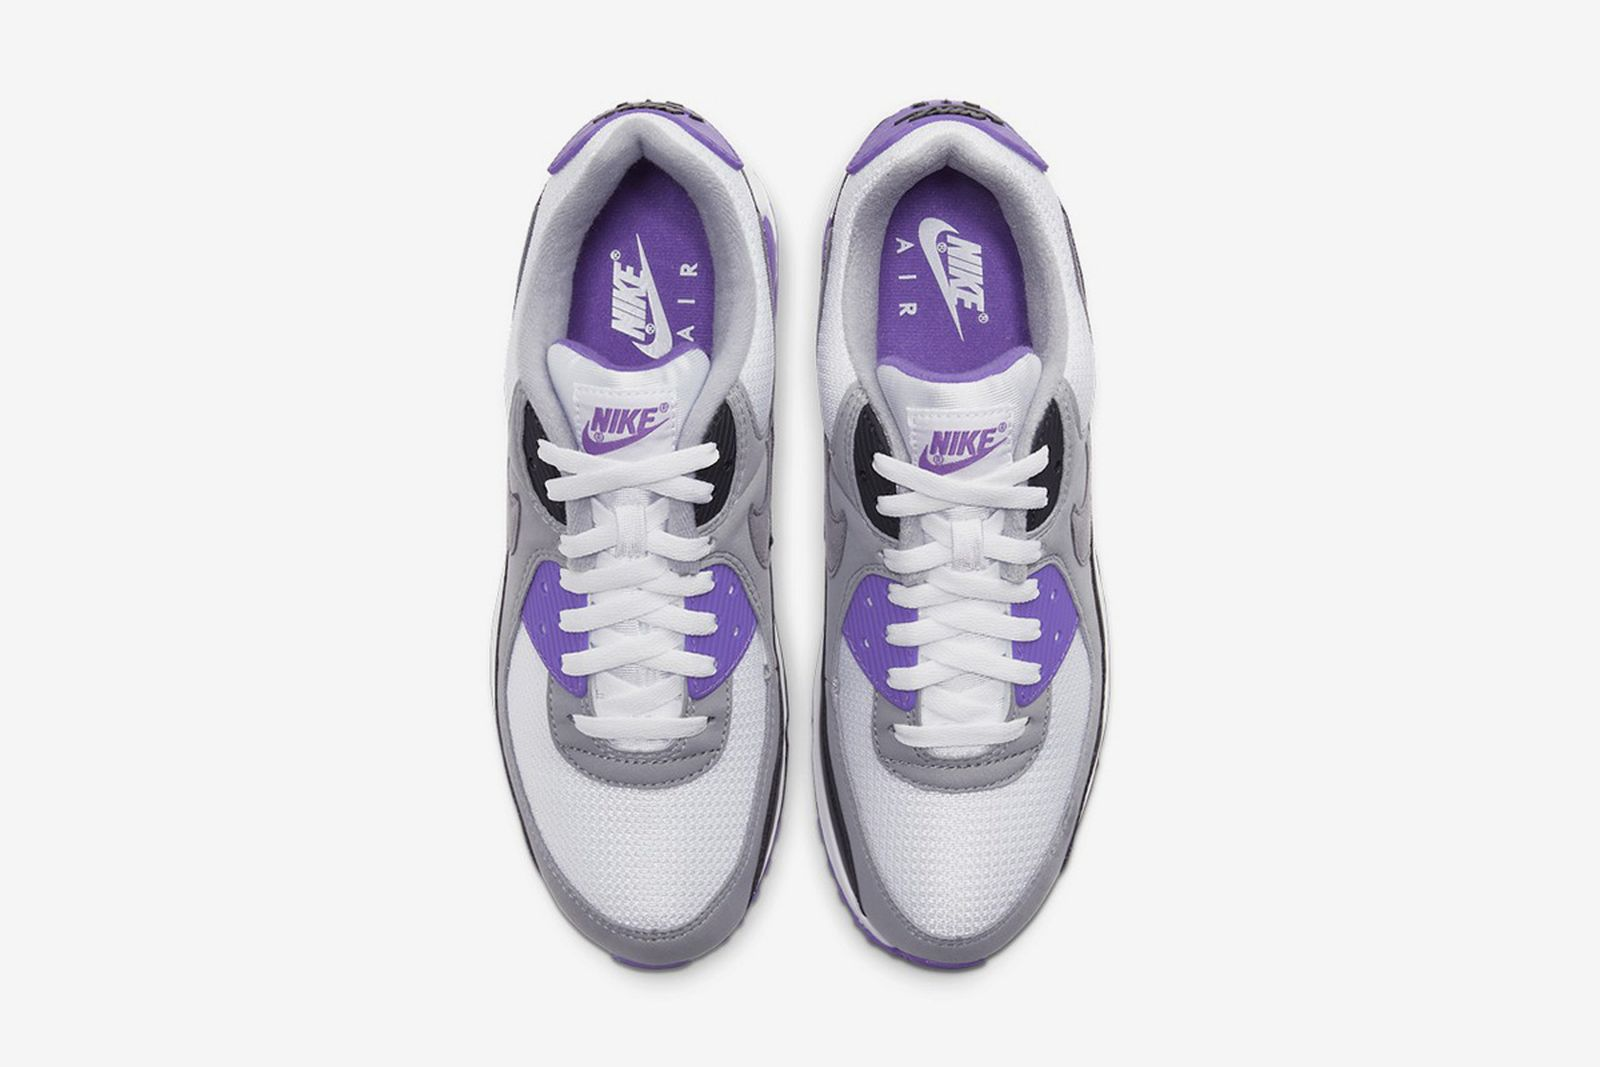 nike-air-max-90-30th-anniversary-colorways-release-date-price-1-09